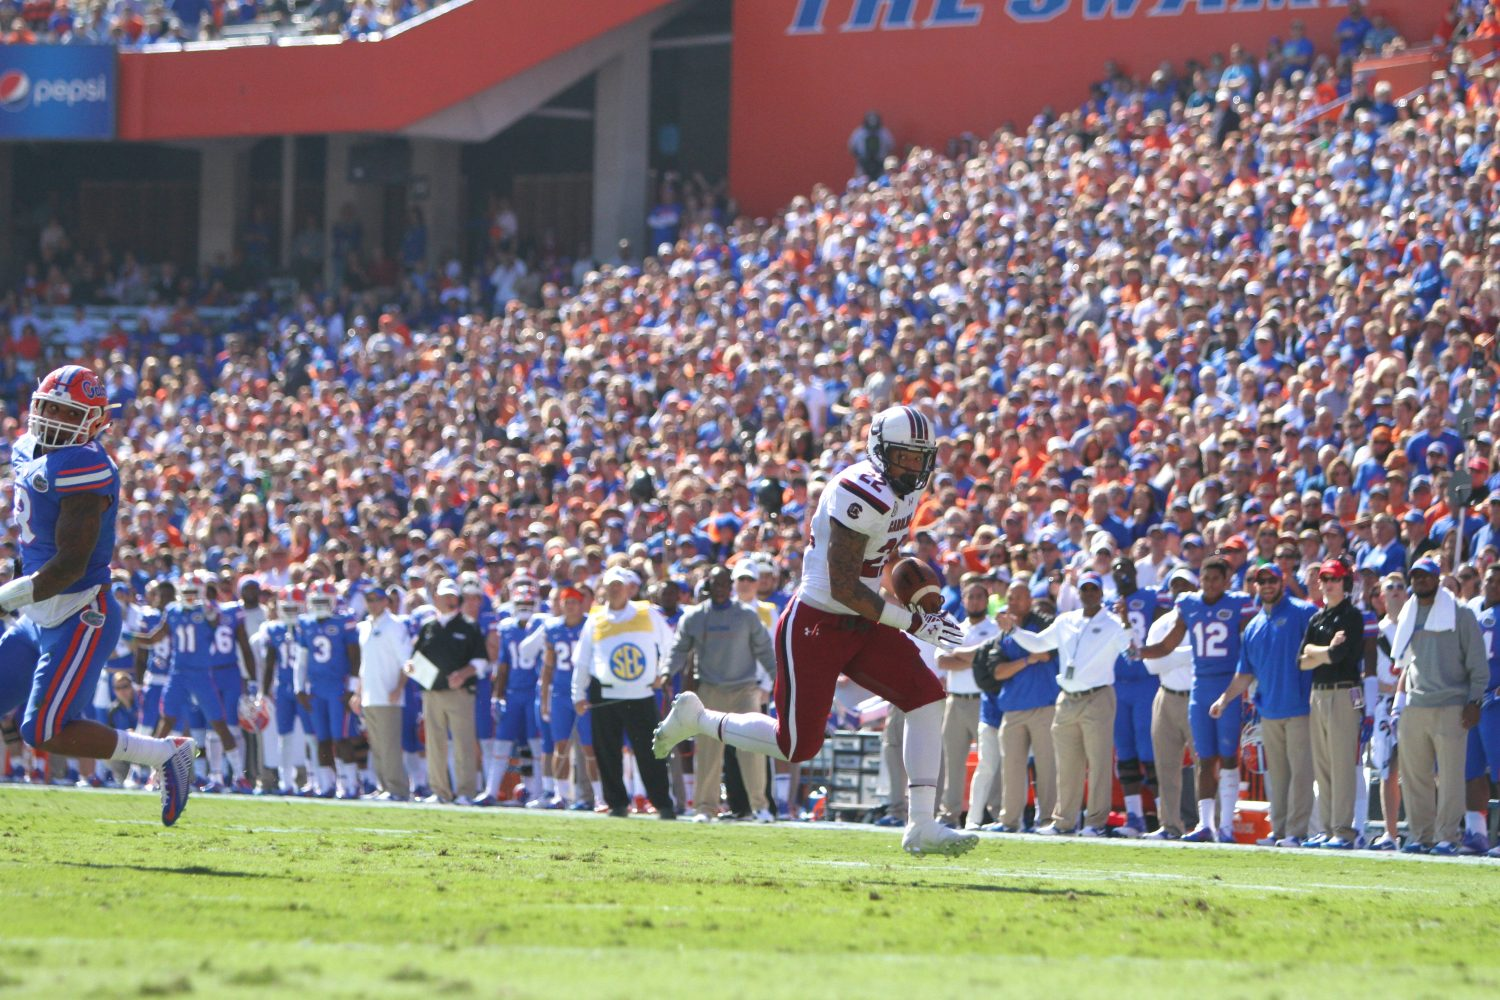 South Carolina running back Brandon Wilds scores the game's first touchdown early in the first quarter on 20-yard run.